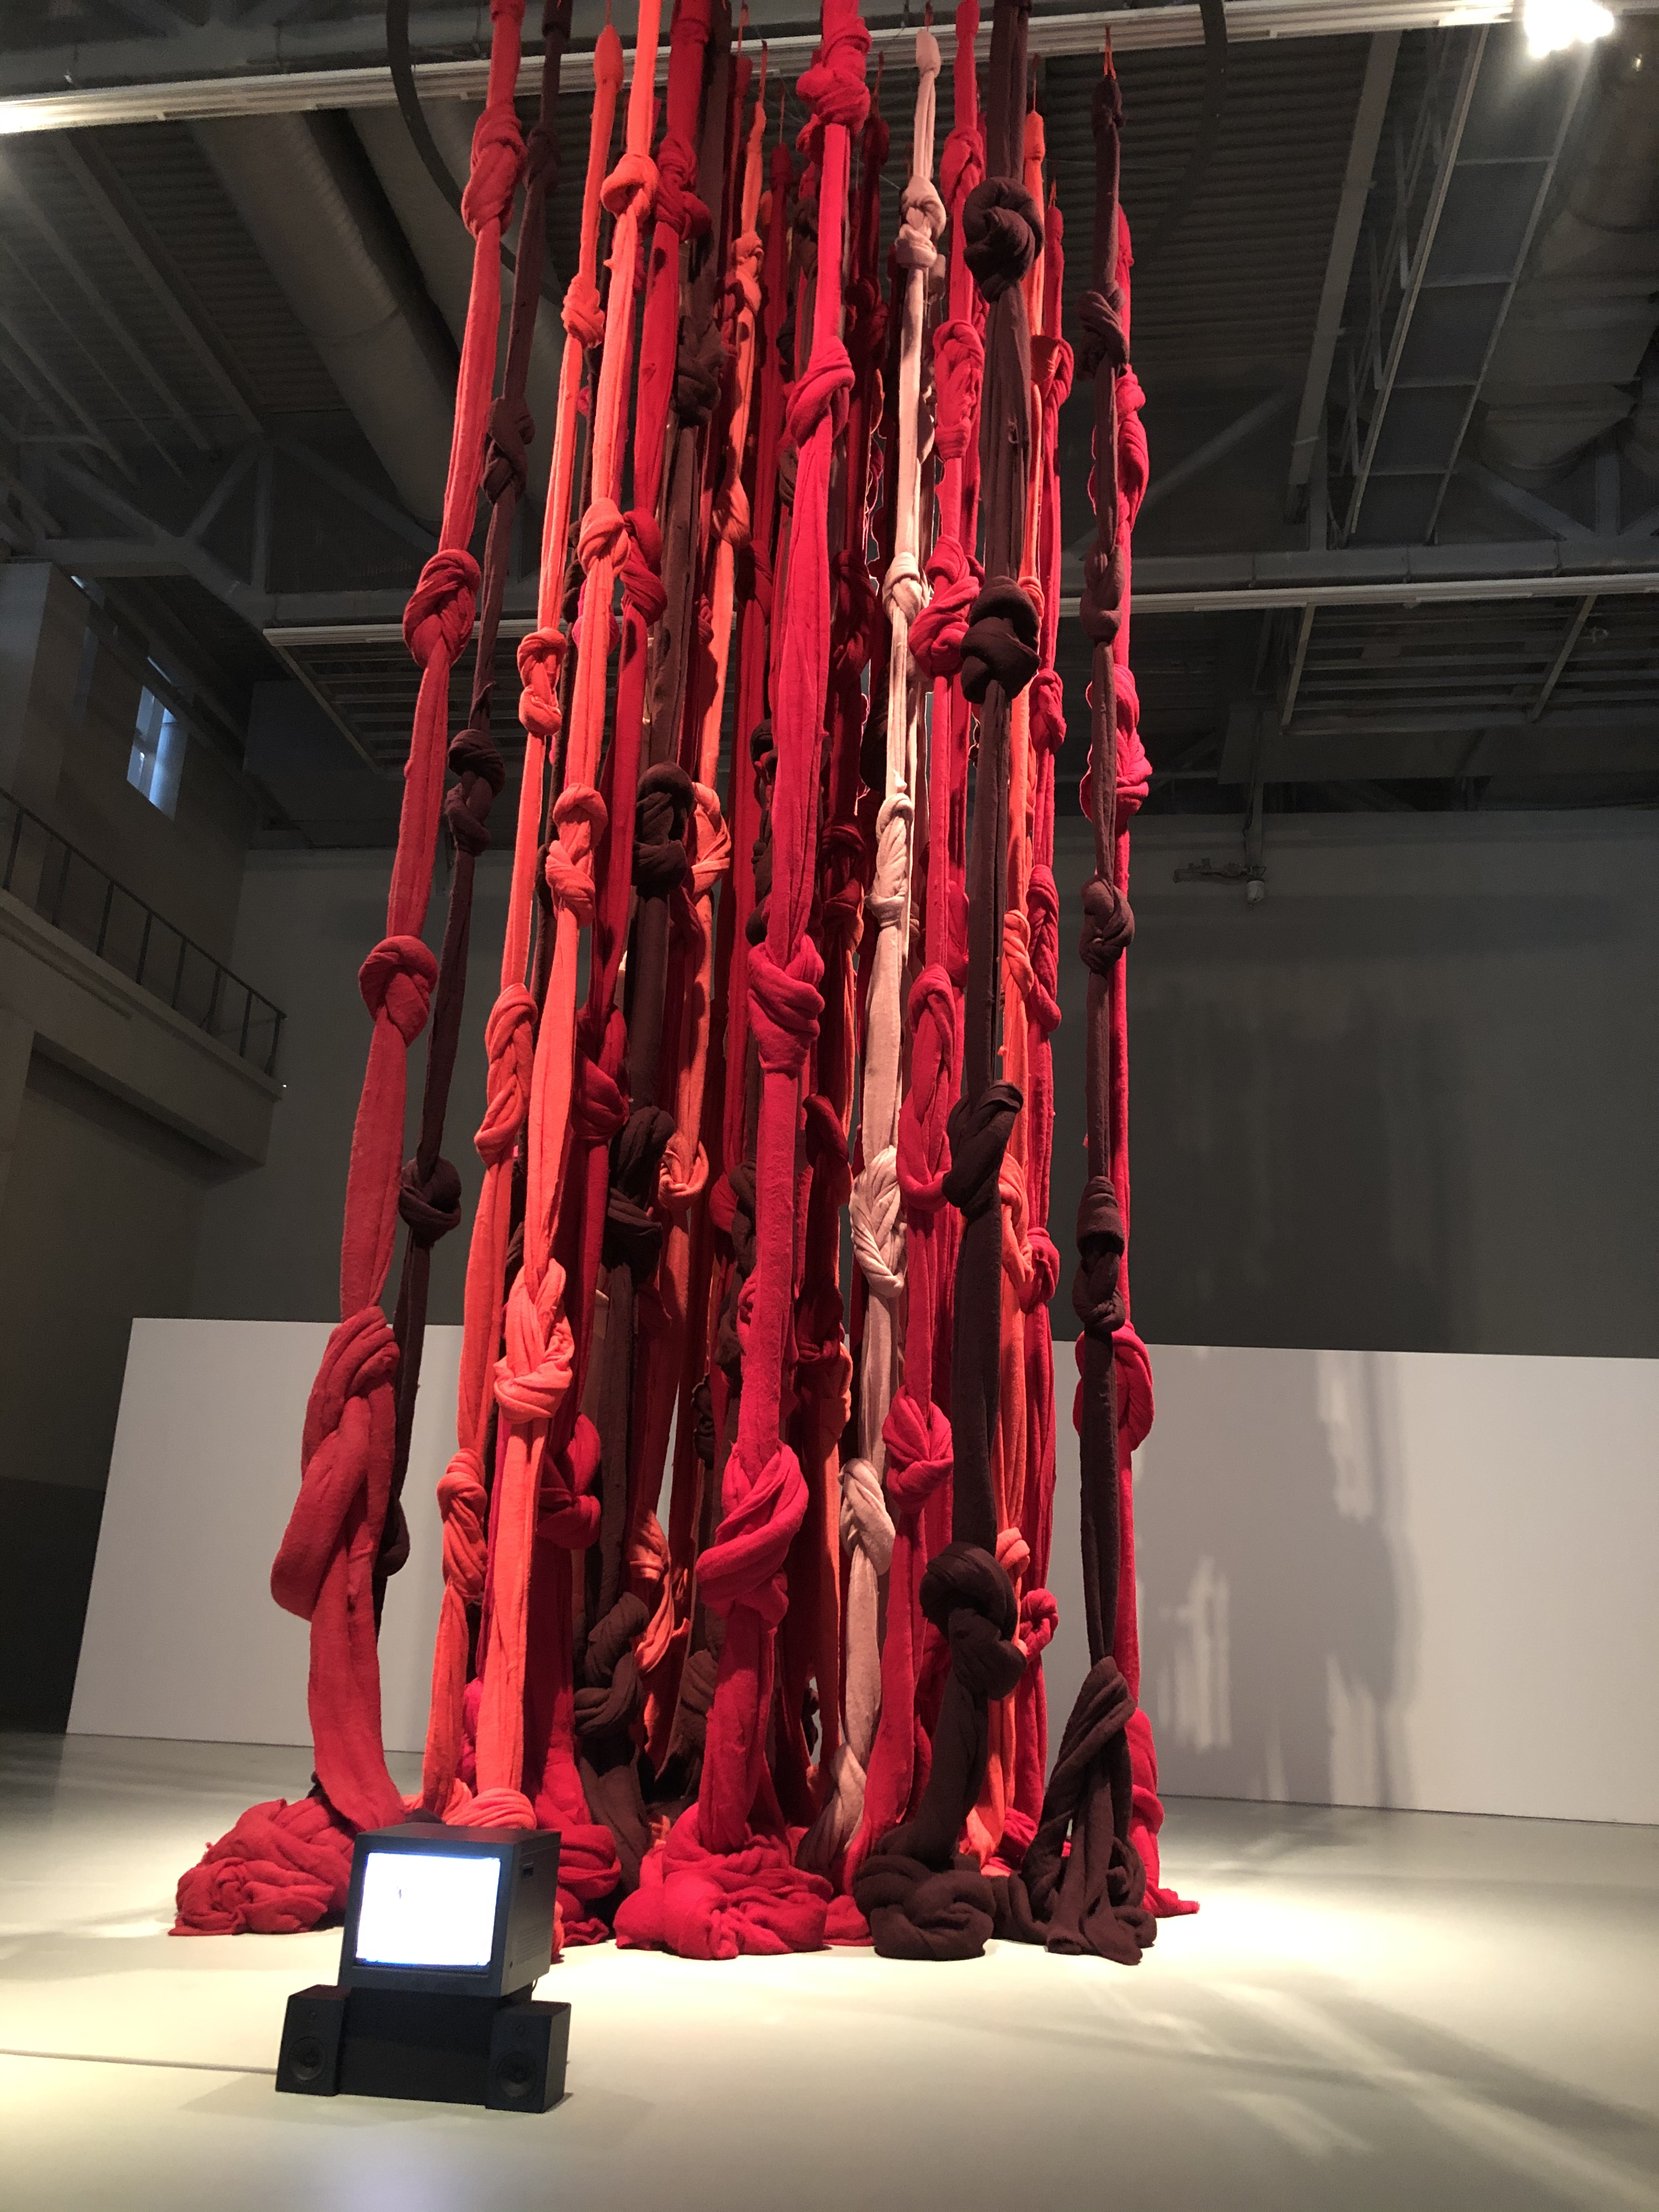 """Quipu Menstrual"" by Chilean artist Cecilia Vicuña, exhibited at the 13th Shanghai Biennale."